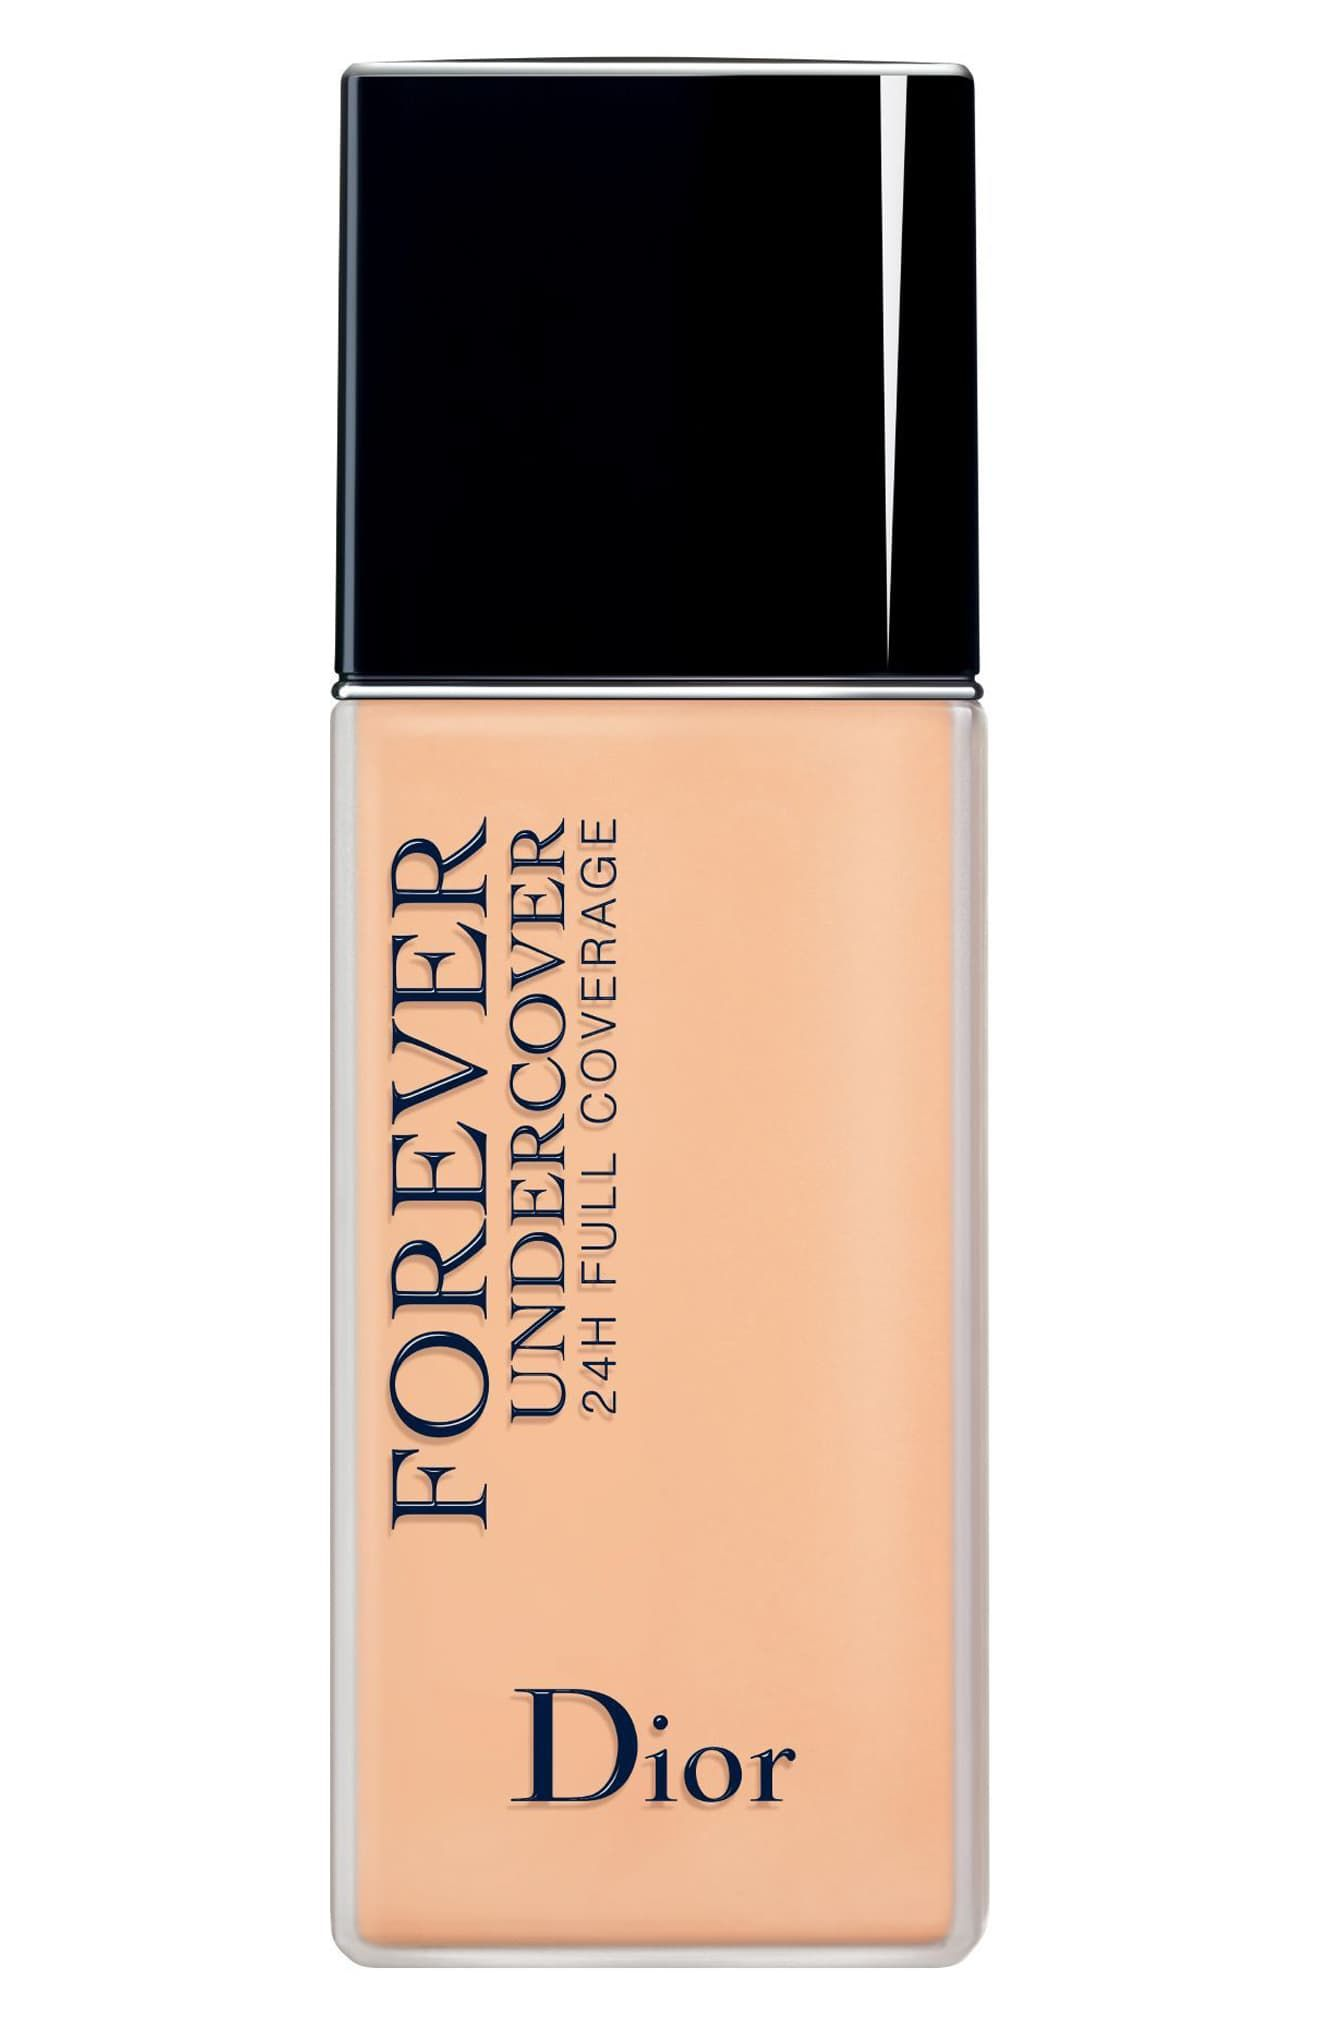 Dior Diorskin Forever Undercover 24 Hour Full Coverage Liquid Foundation 023 Peach Foundation For Oily Skin Dior Makeup Dior Foundation